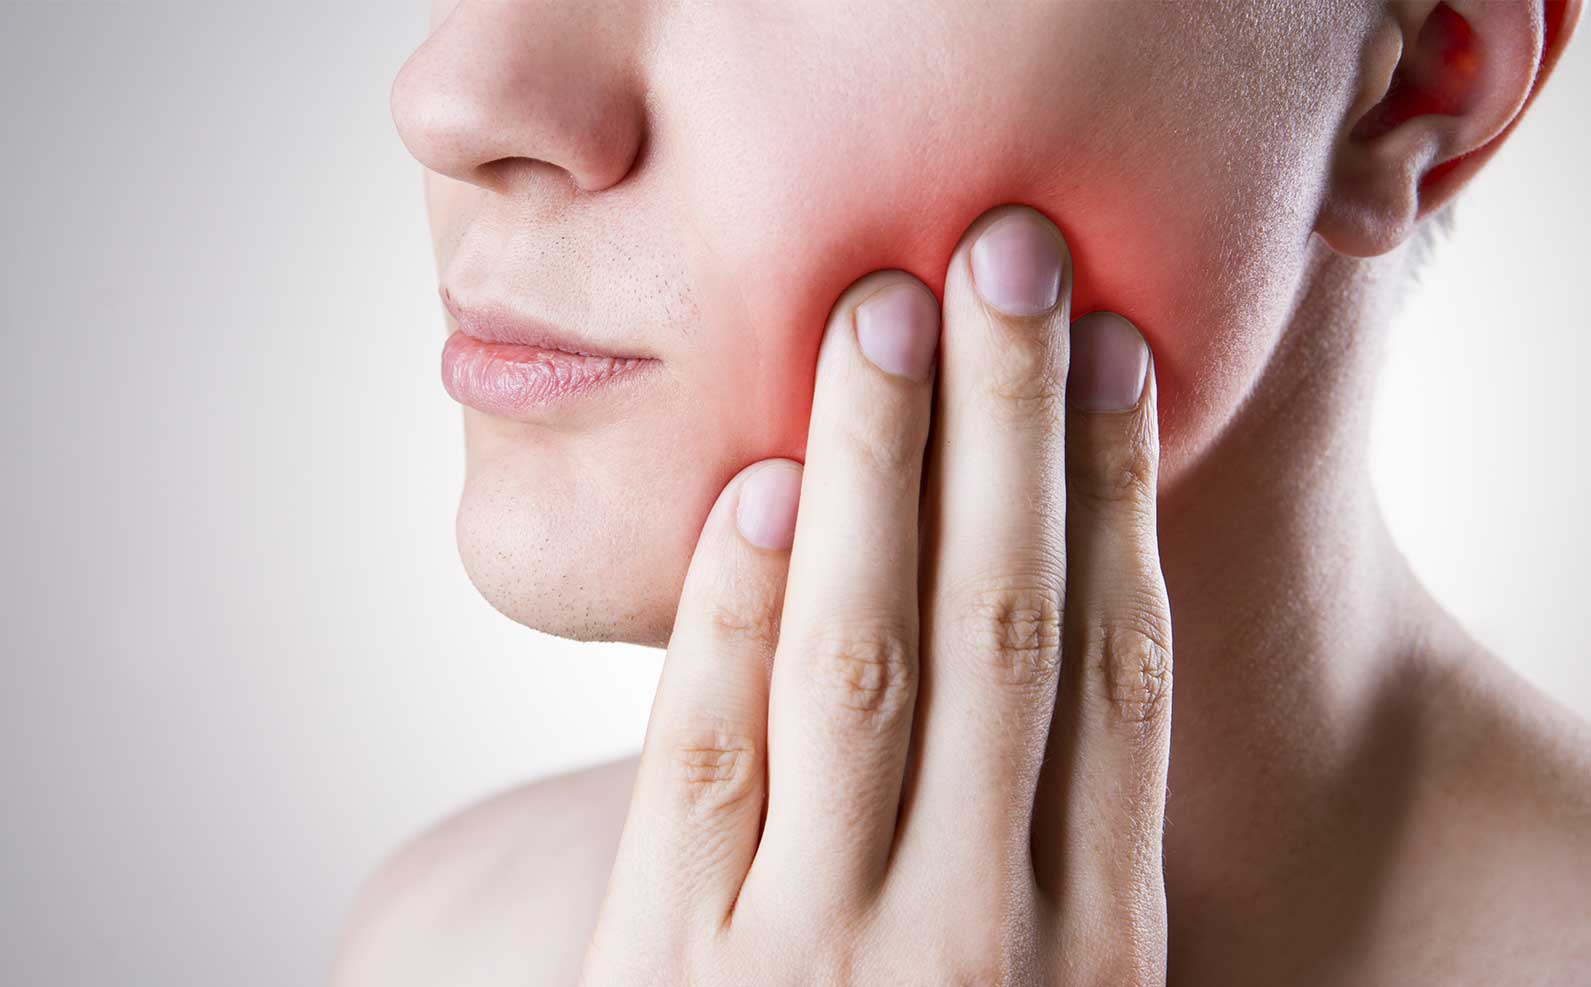 man feeling pain in mouth | The Top 5 Dental Emergencies and What to Do